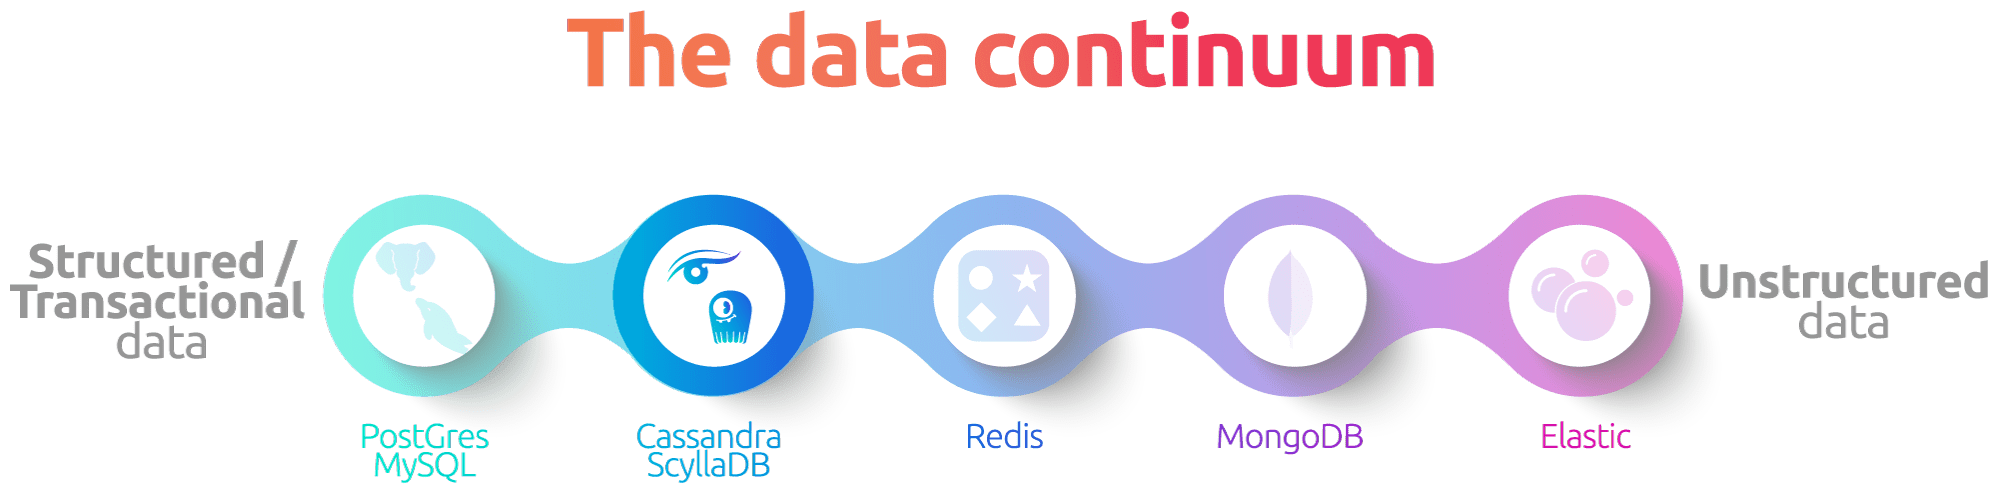 image showing the data continuum from unstructured to structured with Cassandra highlighted